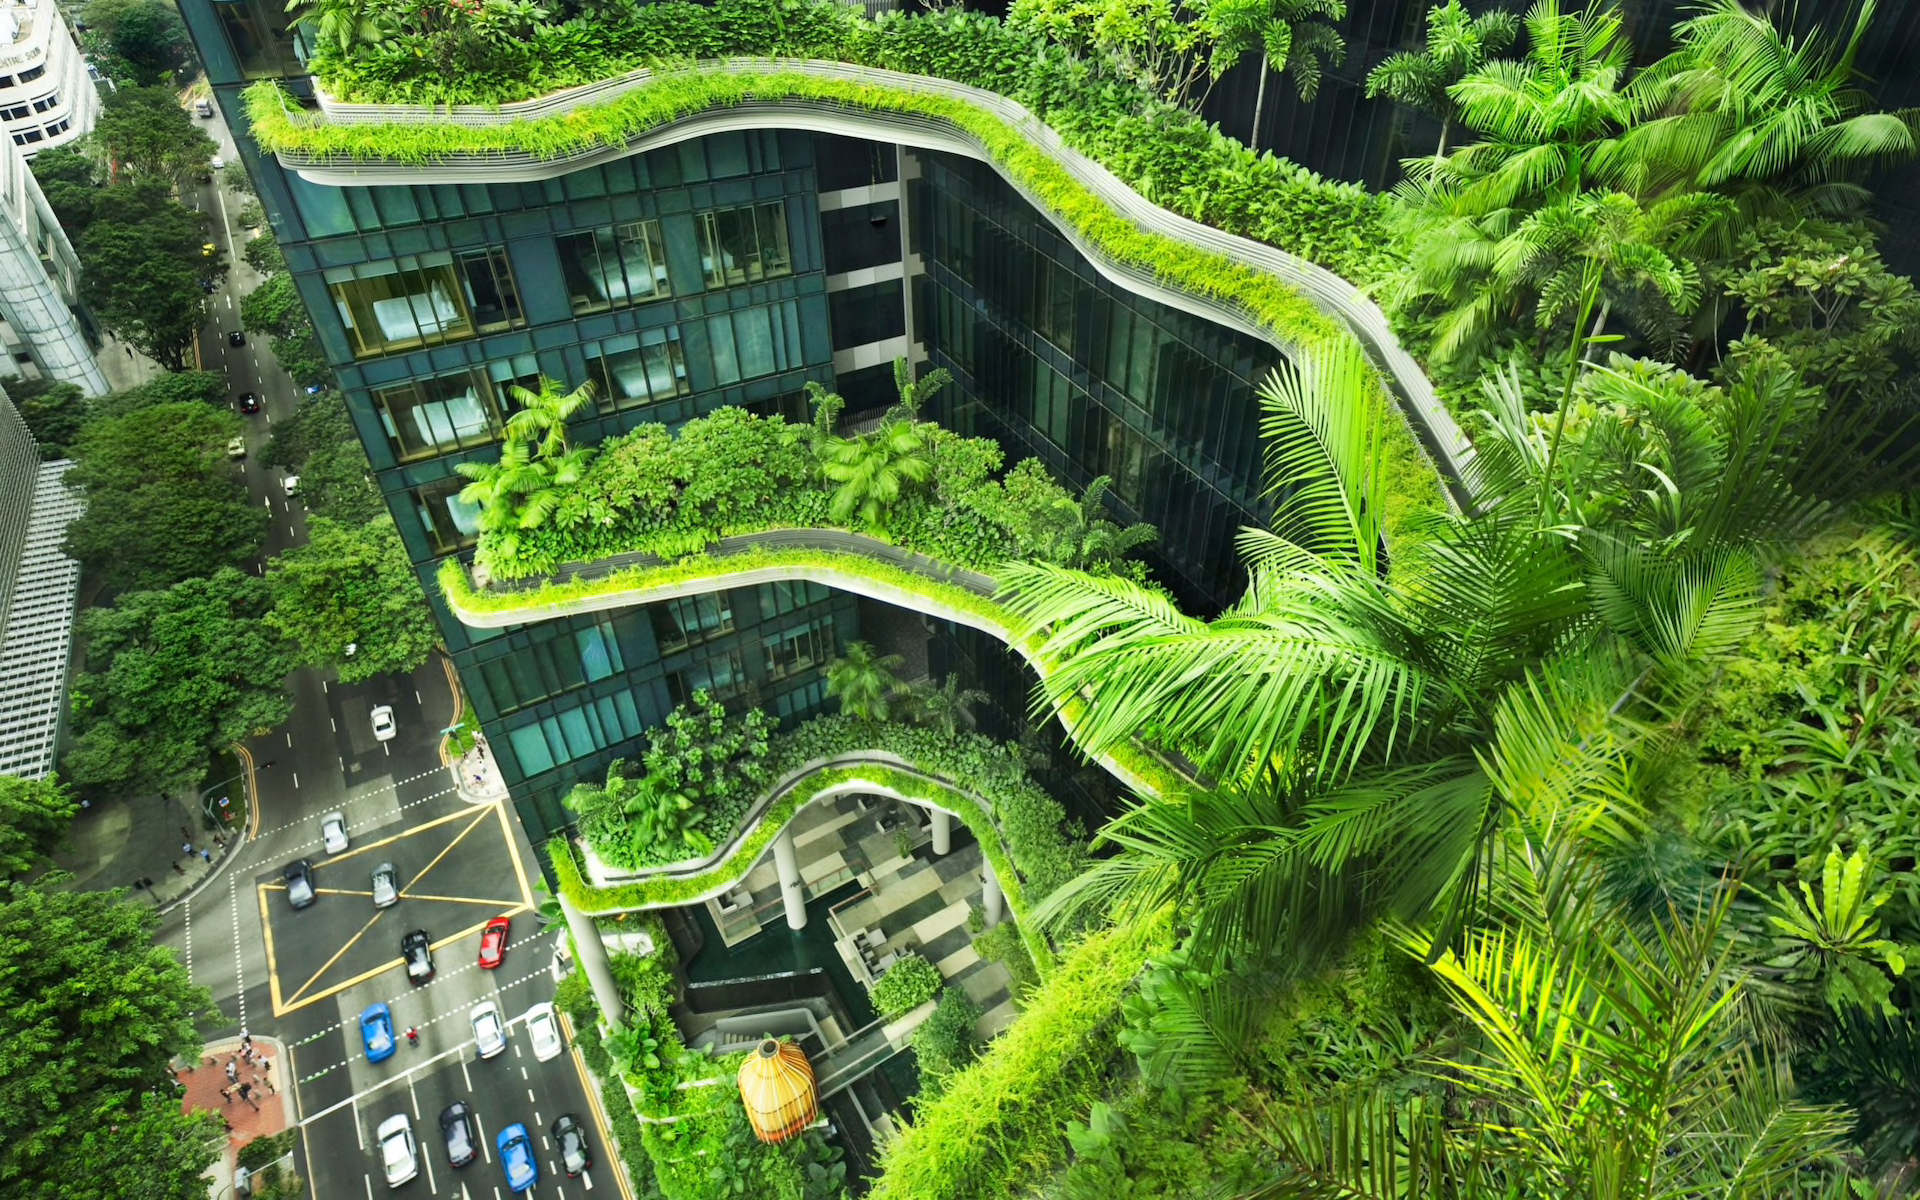 Pretentious Planted Is This Future Our Cities Or Just An News Contract Furnishings News Fantasy Garden Design garden Fantasy Garden Designs